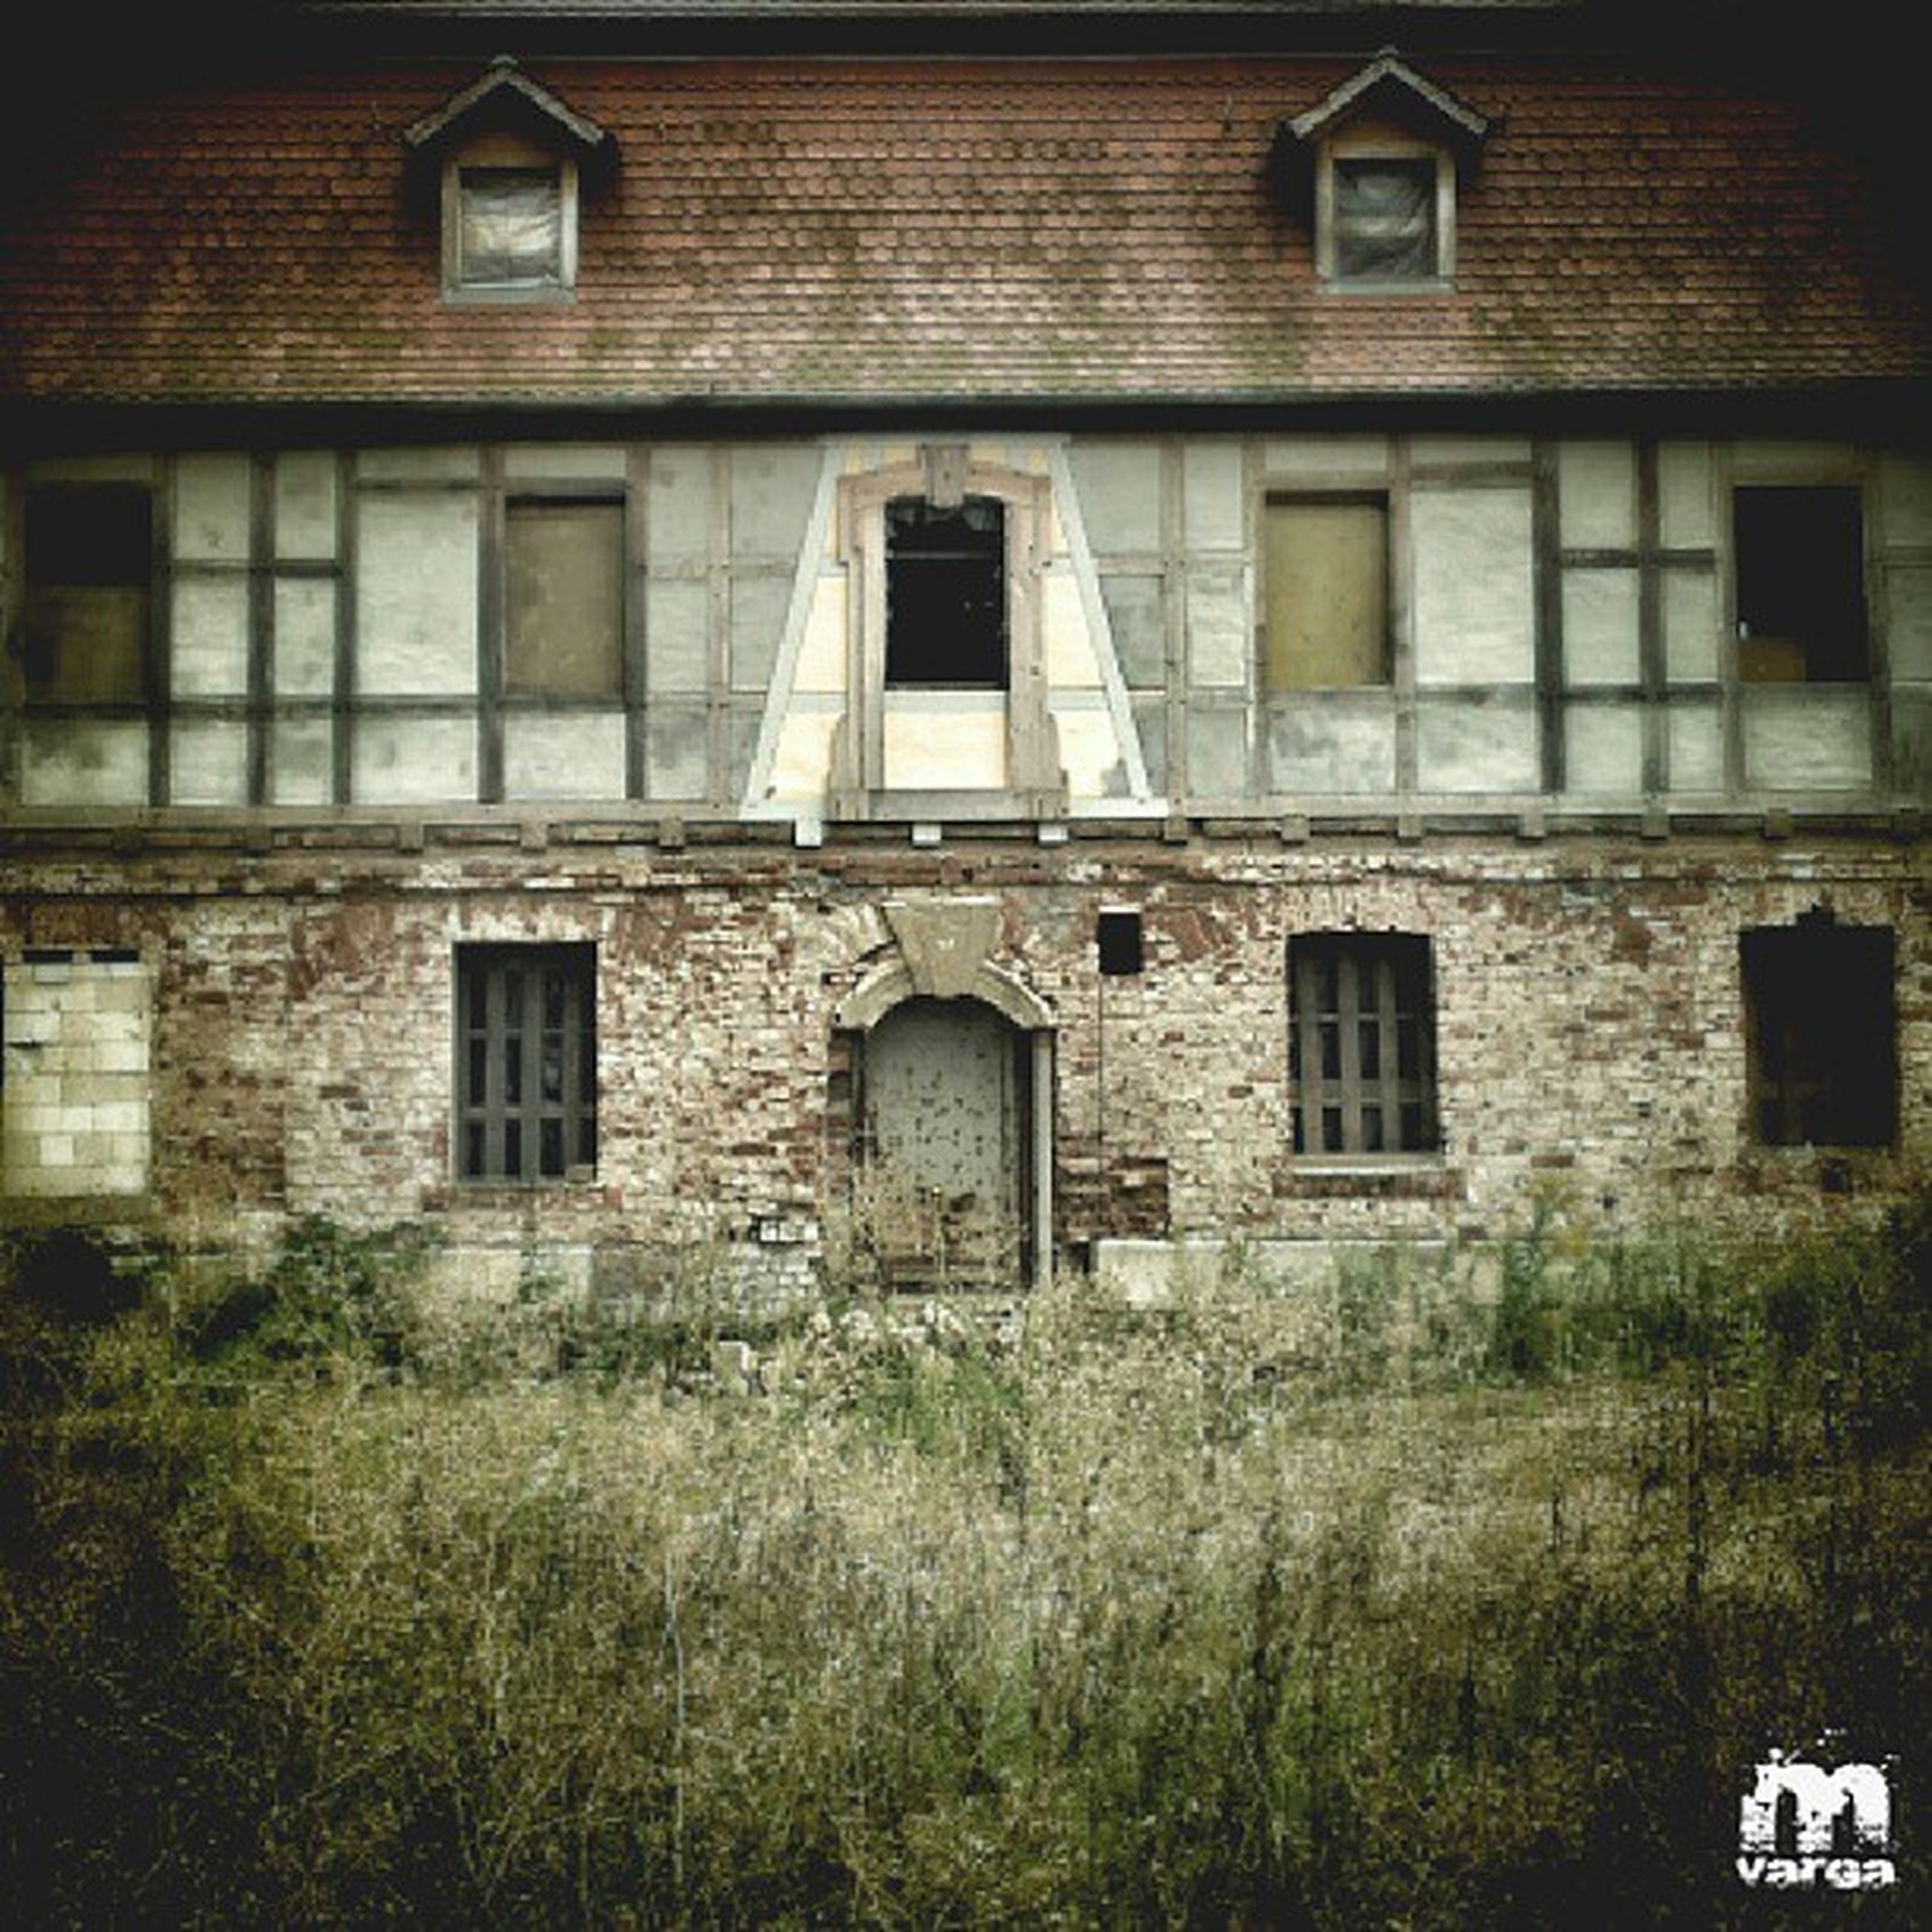 architecture, building exterior, built structure, window, grass, abandoned, house, residential structure, old, building, residential building, obsolete, damaged, field, plant, exterior, day, run-down, outdoors, facade